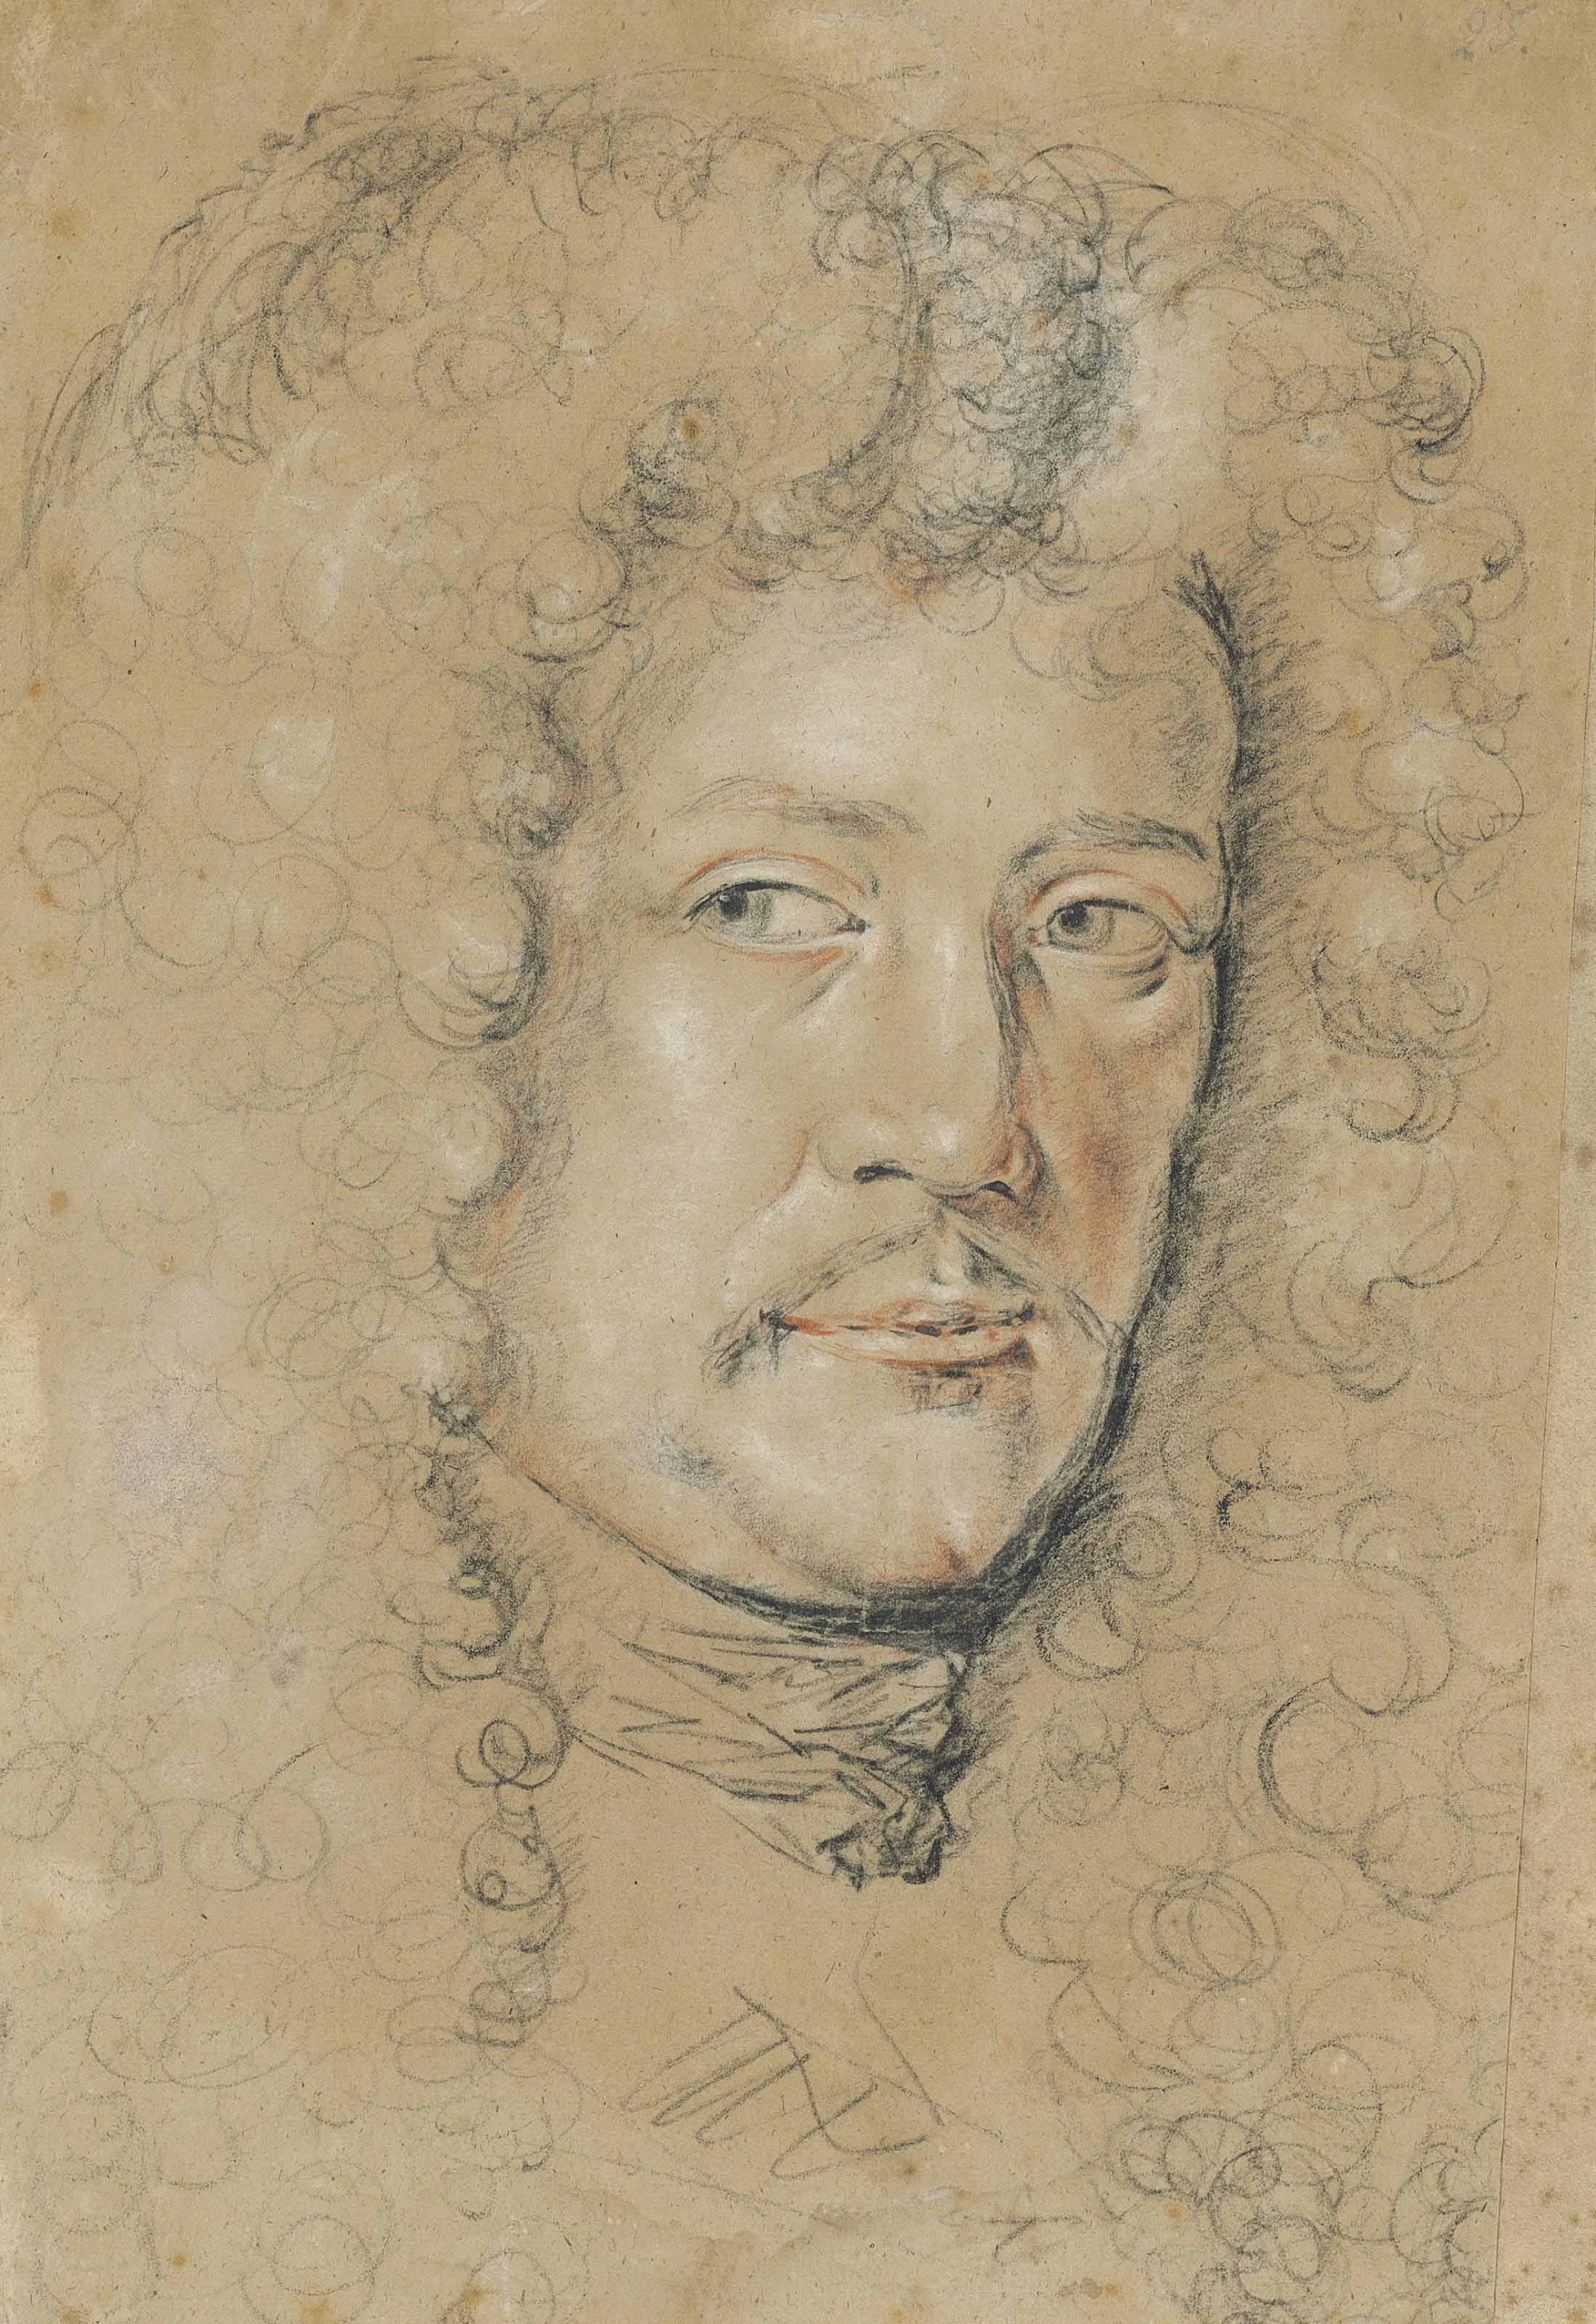 Head of a man with a moustache and wearing a wig (recto); Studies of arms and hands (verso)